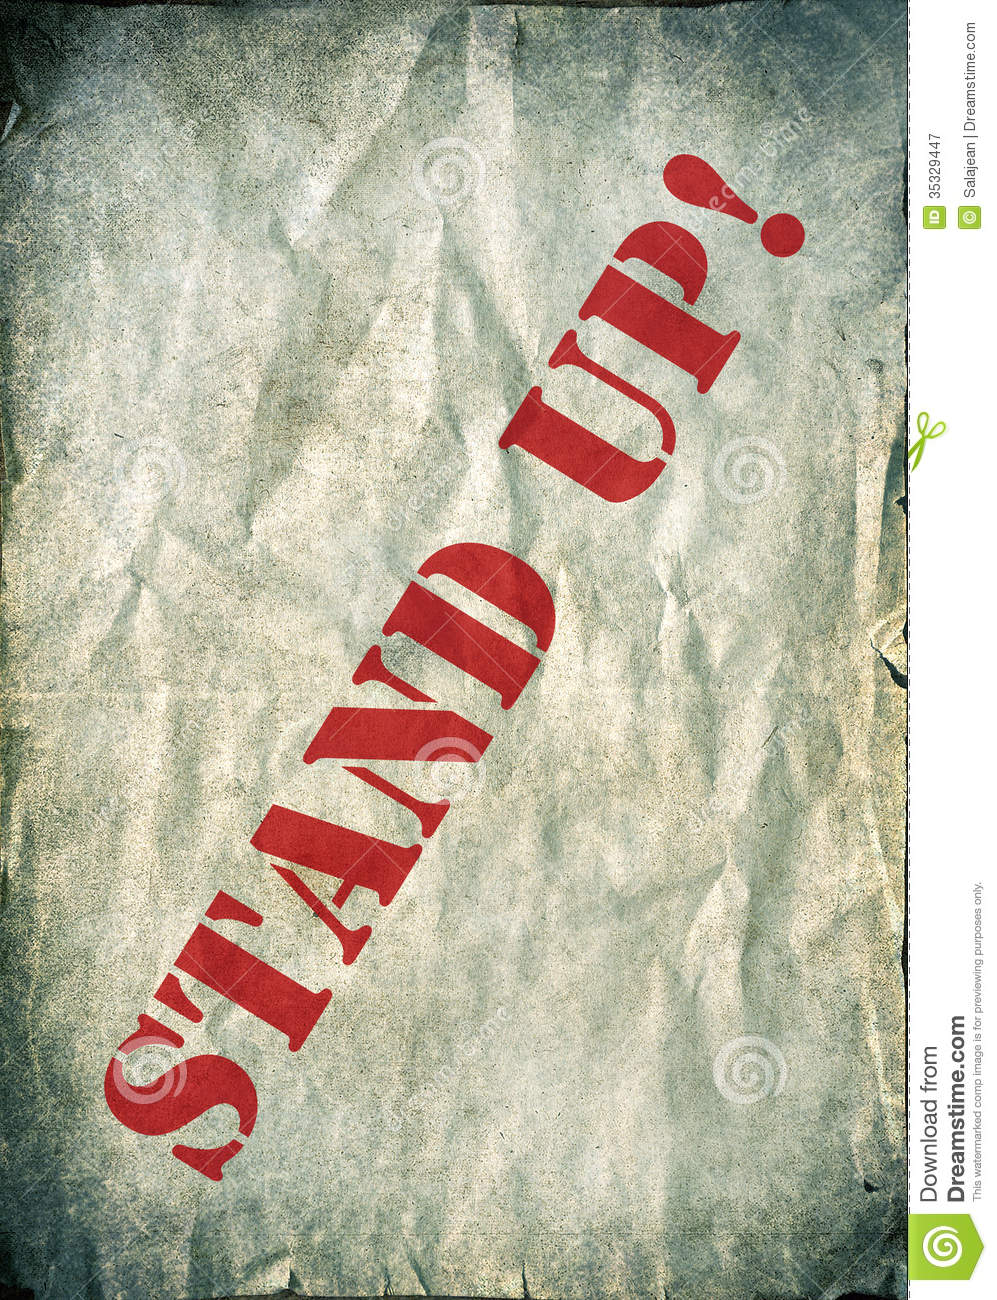 red stand up letters on a vintage background